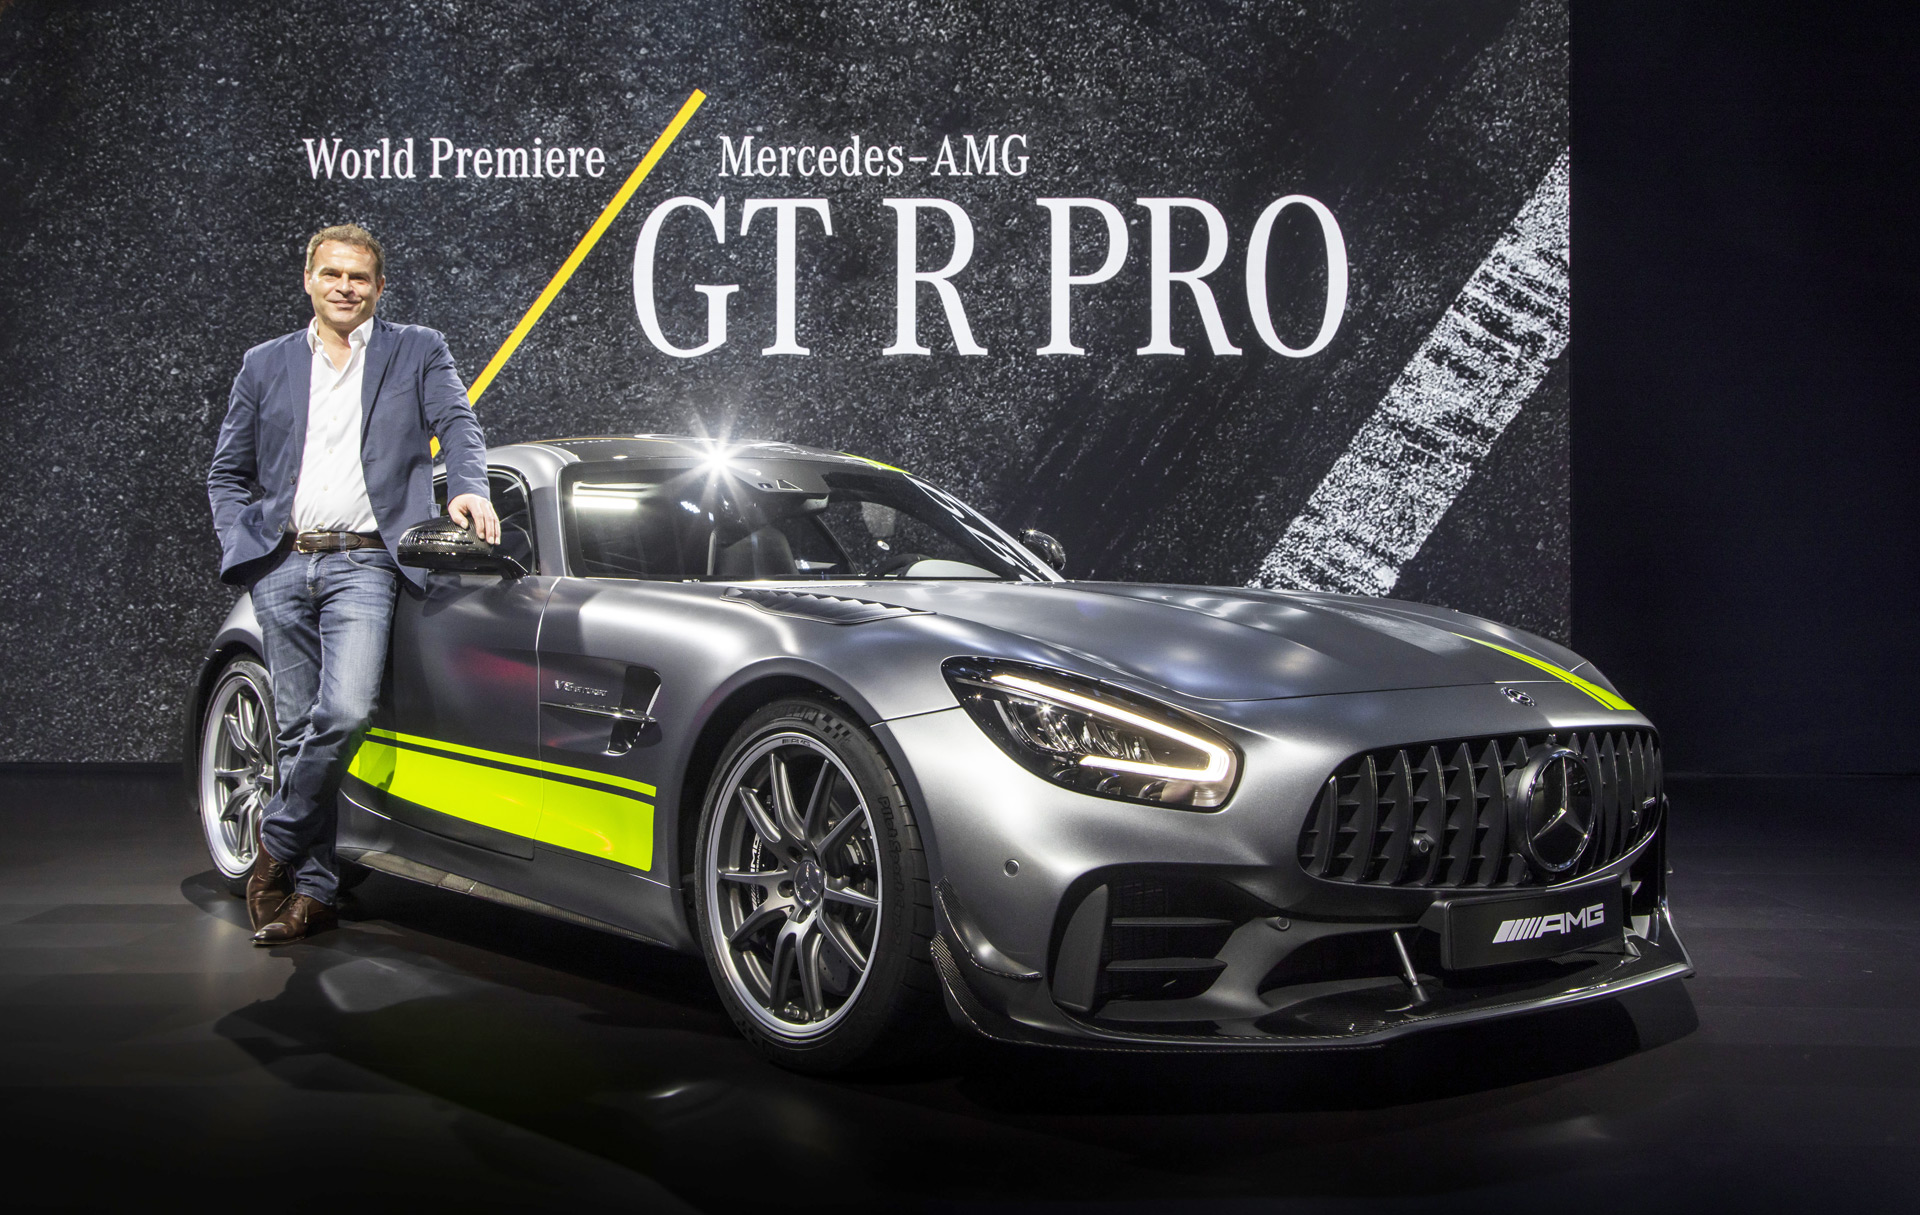 Mercedes Amg Gt Black Series Could Come With 700 Hp To Challenge 720s 911 Gt2 Rs